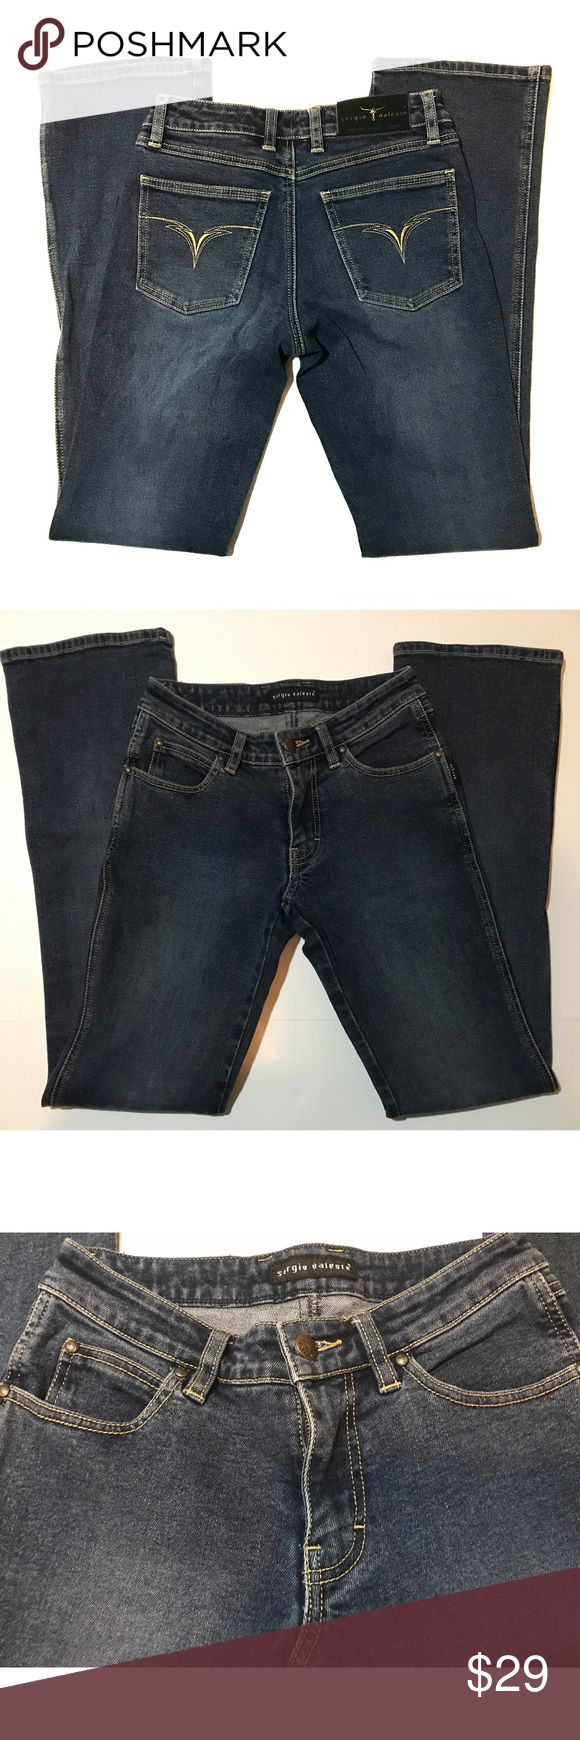 """90's Sergio Valente Designer Jeans Sz 26 x 32 EUC Sergio Valente Jeans were my FAVORITE in the 90's. They are made with Extreme Quality and very hard to find nowadays. I have meticulously kept these for all these years in hopes of fitting into them again and sadly it will never happen 😫. Embroidered Signature Pockets. Medium Wash. Boot cut. 6"""" leg opening. 8""""  low rise. 20"""" widest part of hip. Firm price, little negotiation. Sergio Valente Jeans Boot Cut"""